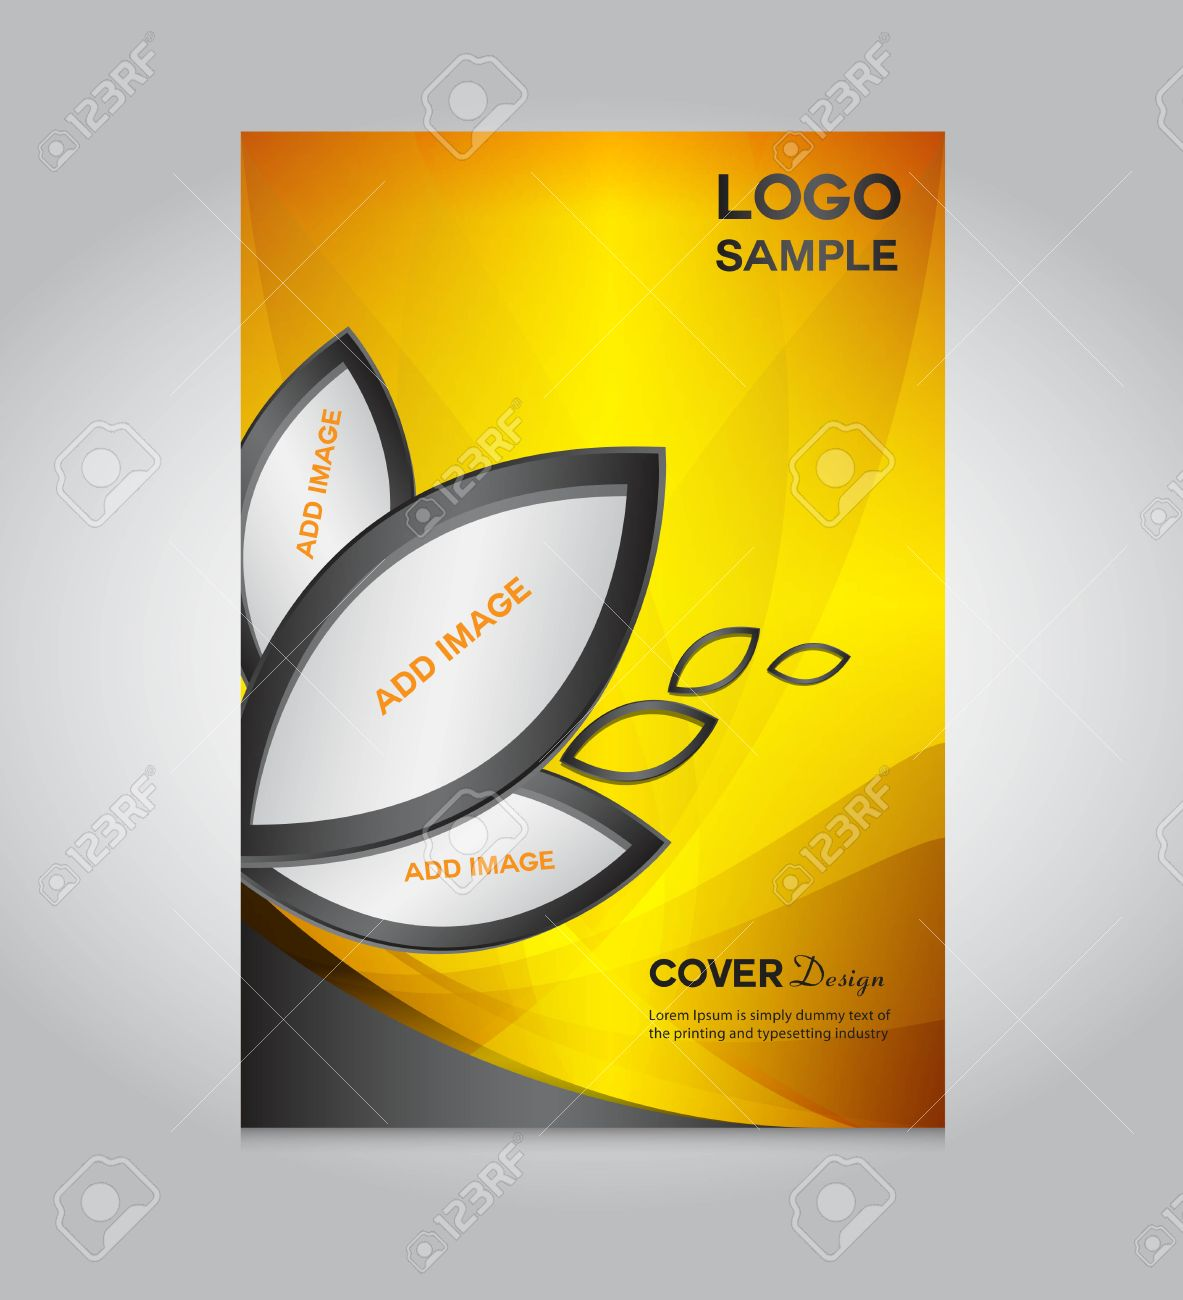 Gold Cover Design Template, Cover Design, Printing Design, Vector ...